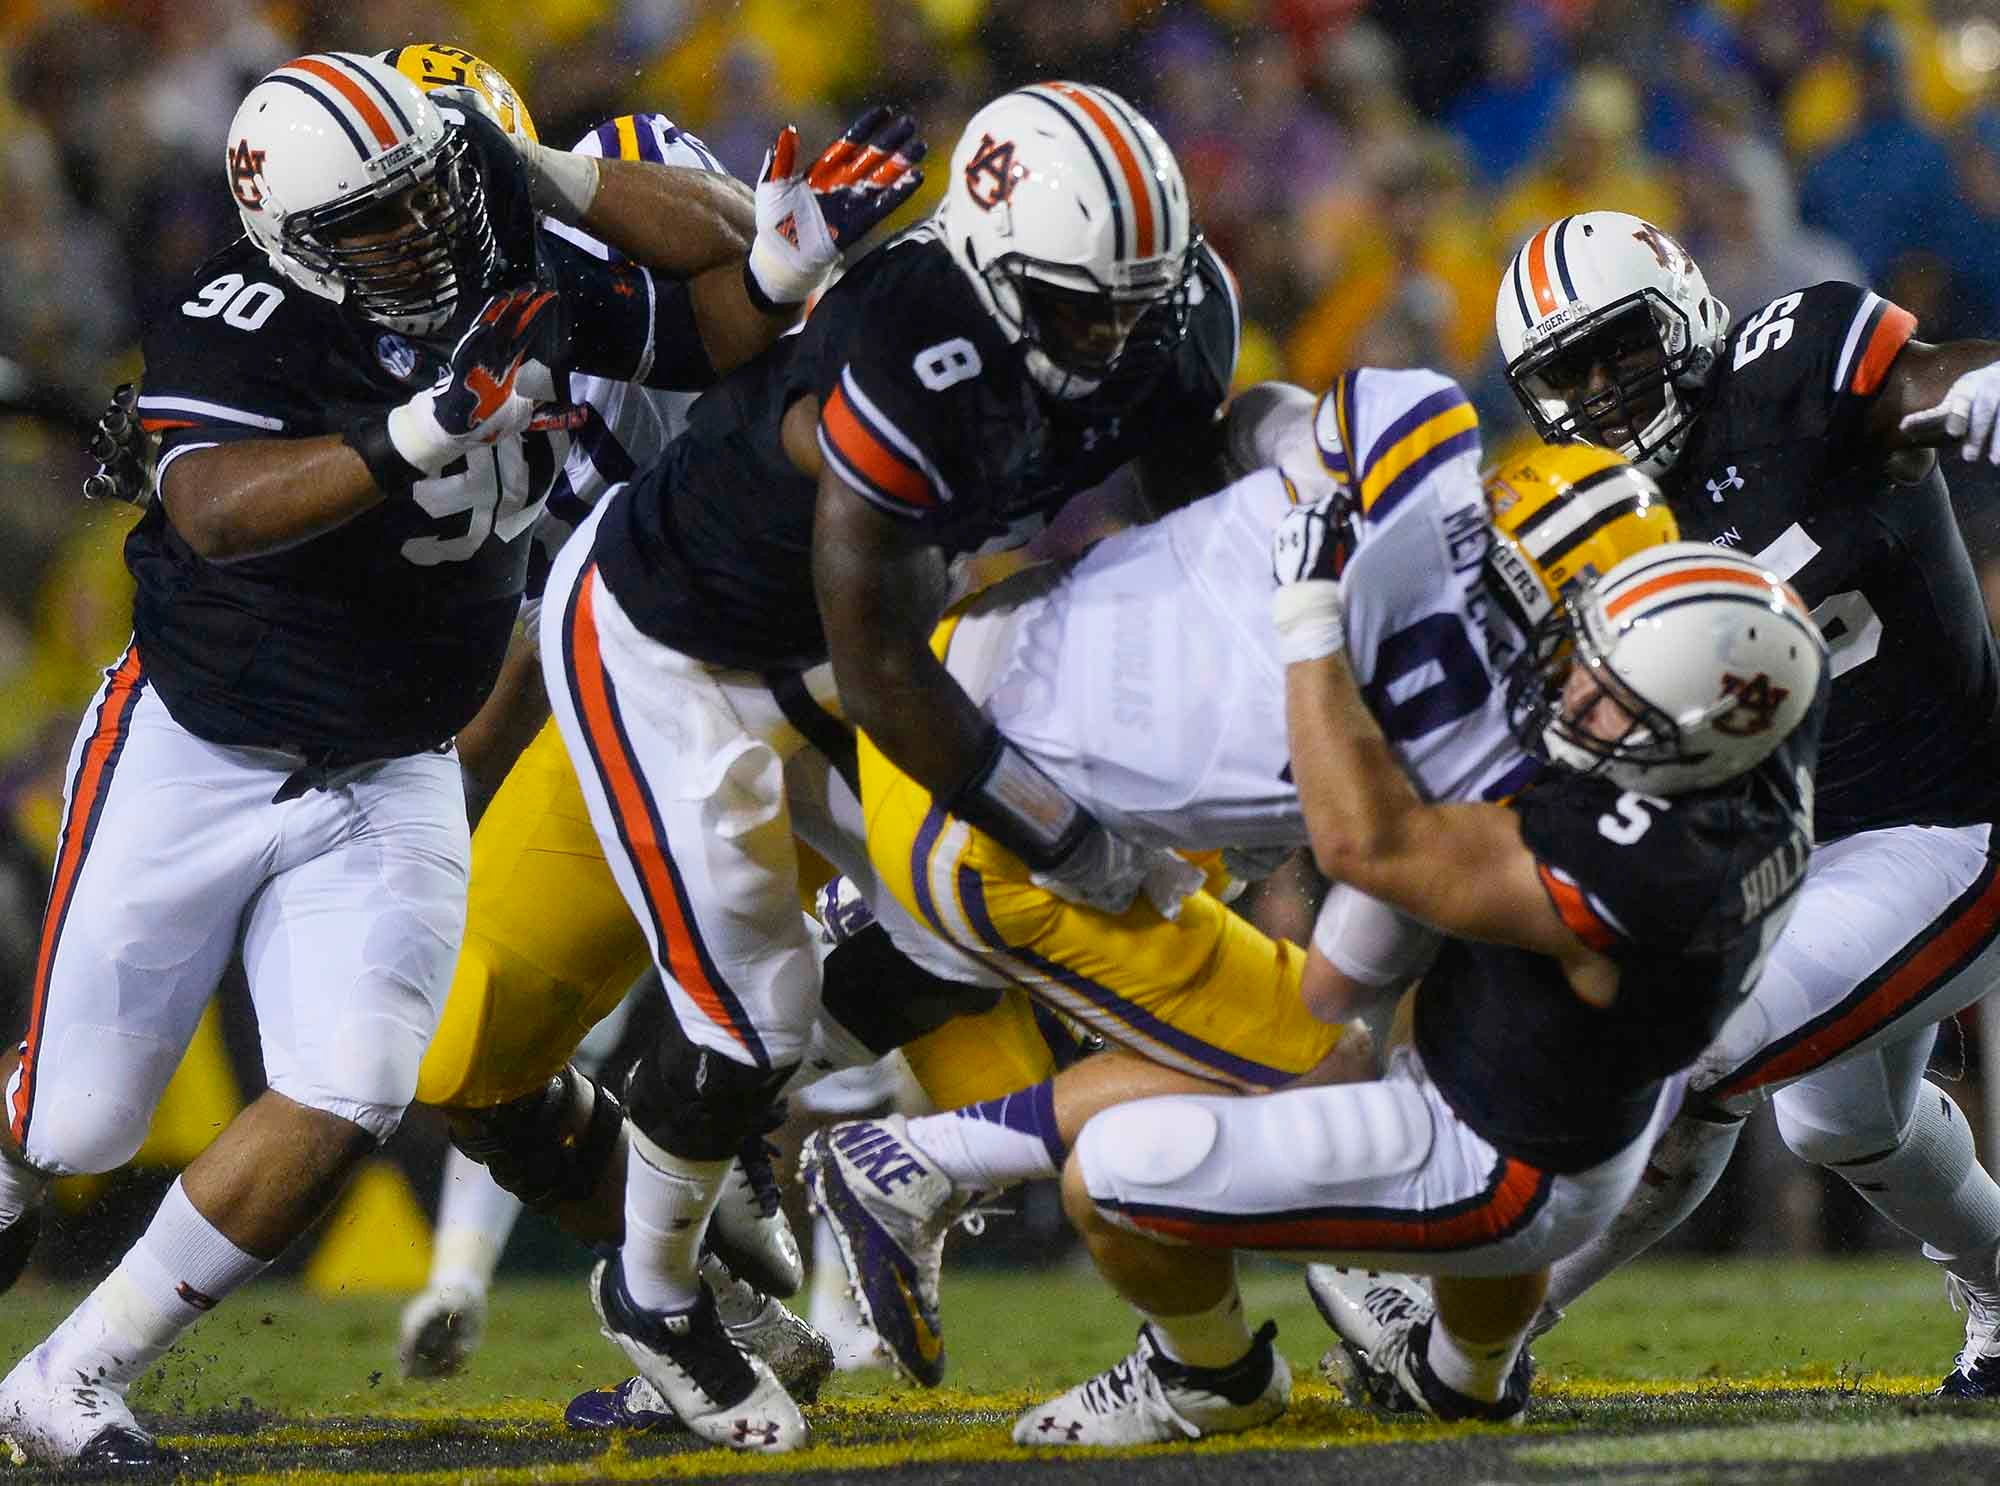 LSU quarterback Zach Mettenberger gets sacked by the Auburn defense. Mettenberger has gotten off to a good start this seas